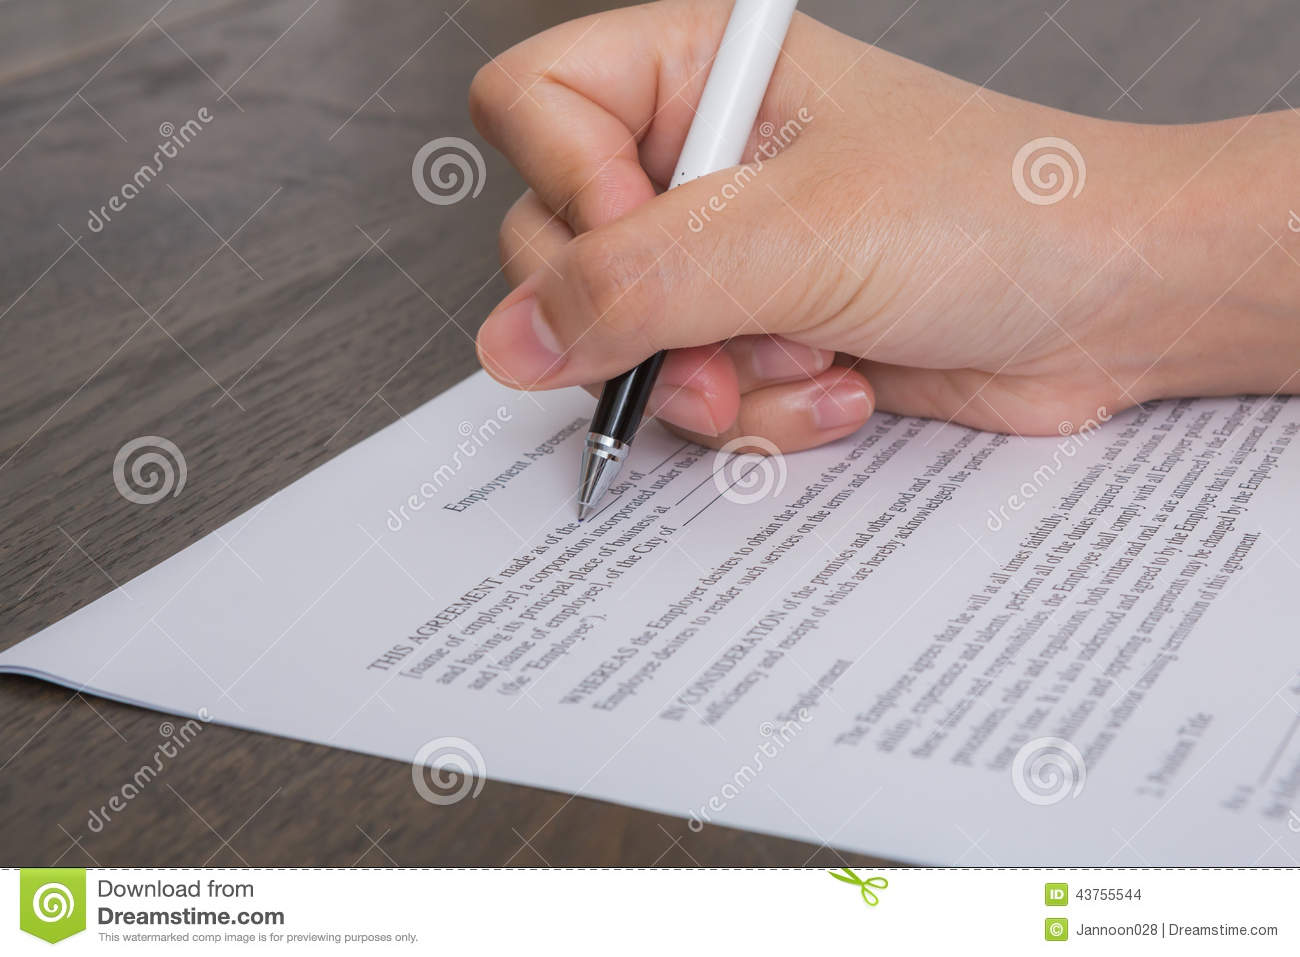 close up of hand completing an employment application form stock close up of hand completing an employment application form